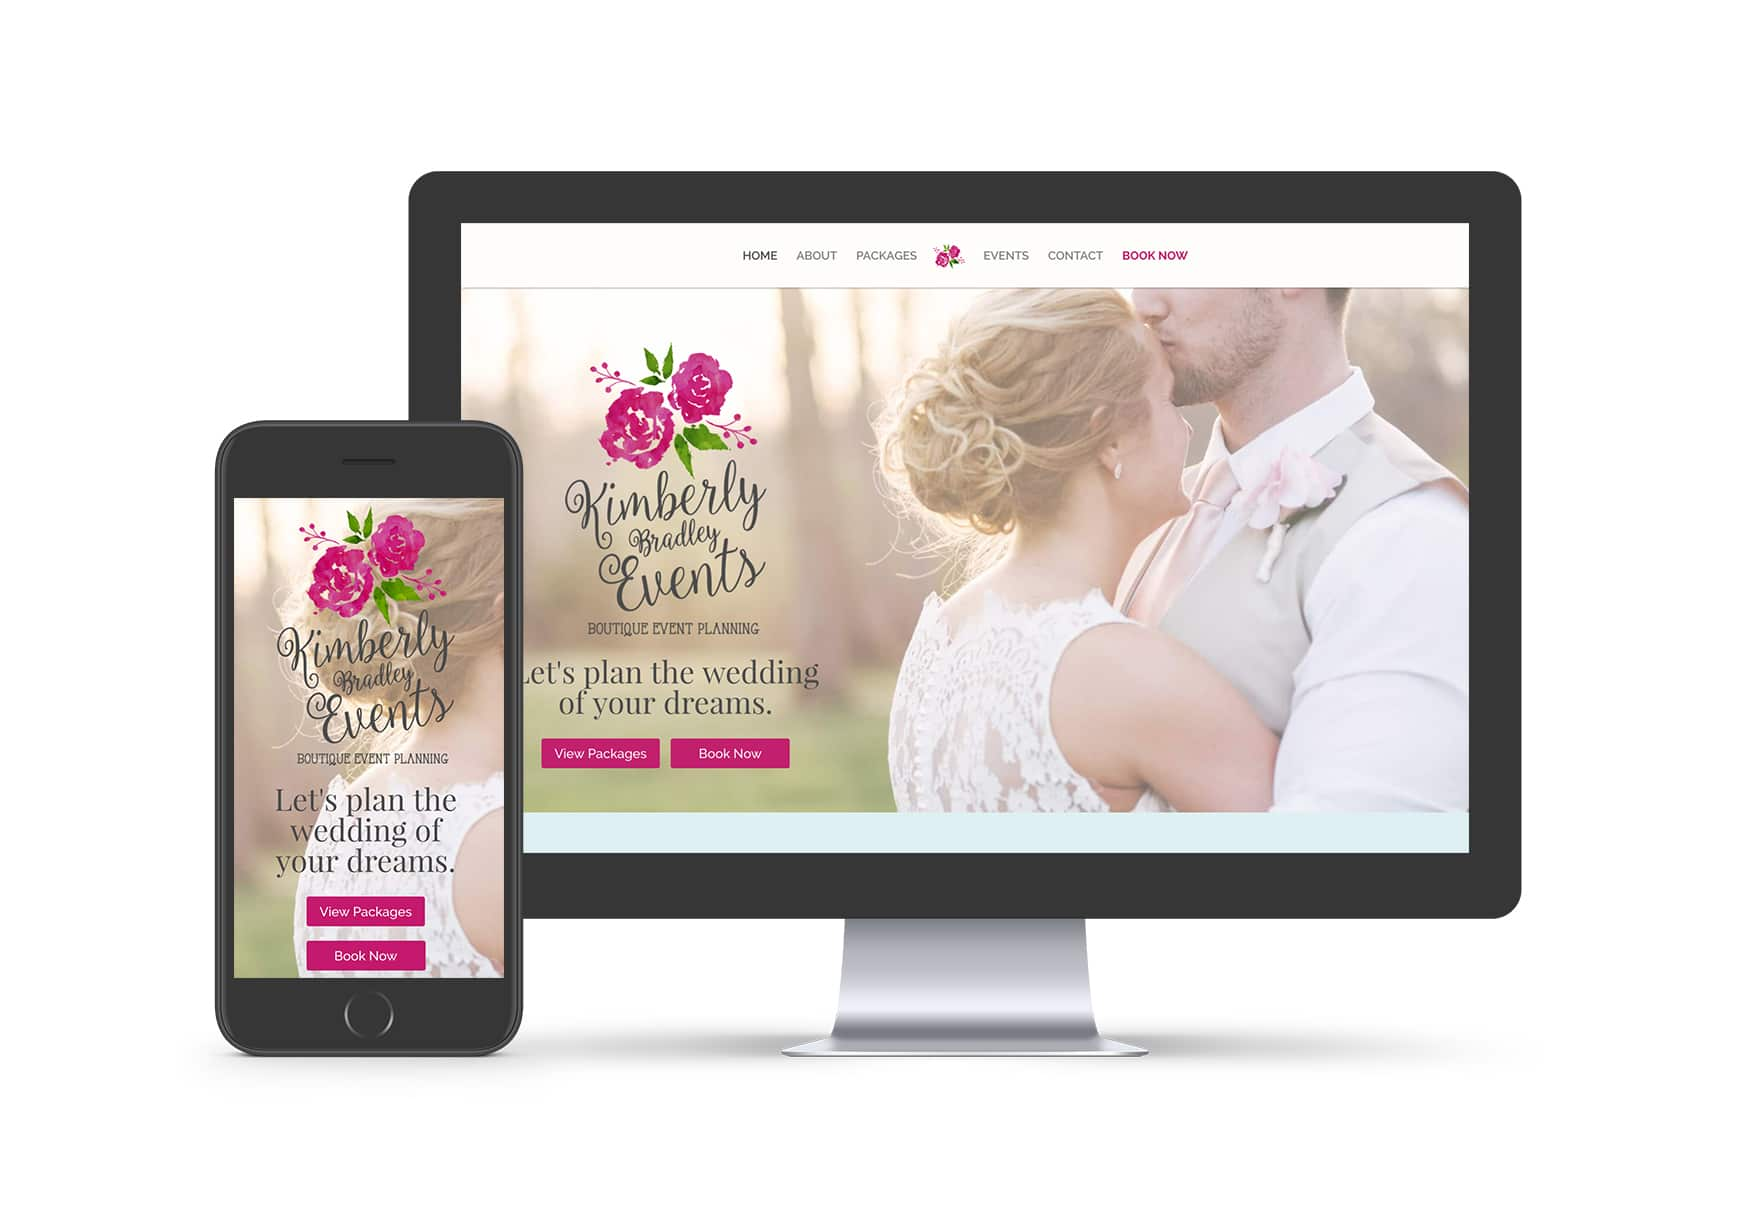 Website Design - Kimberly Bradley Events